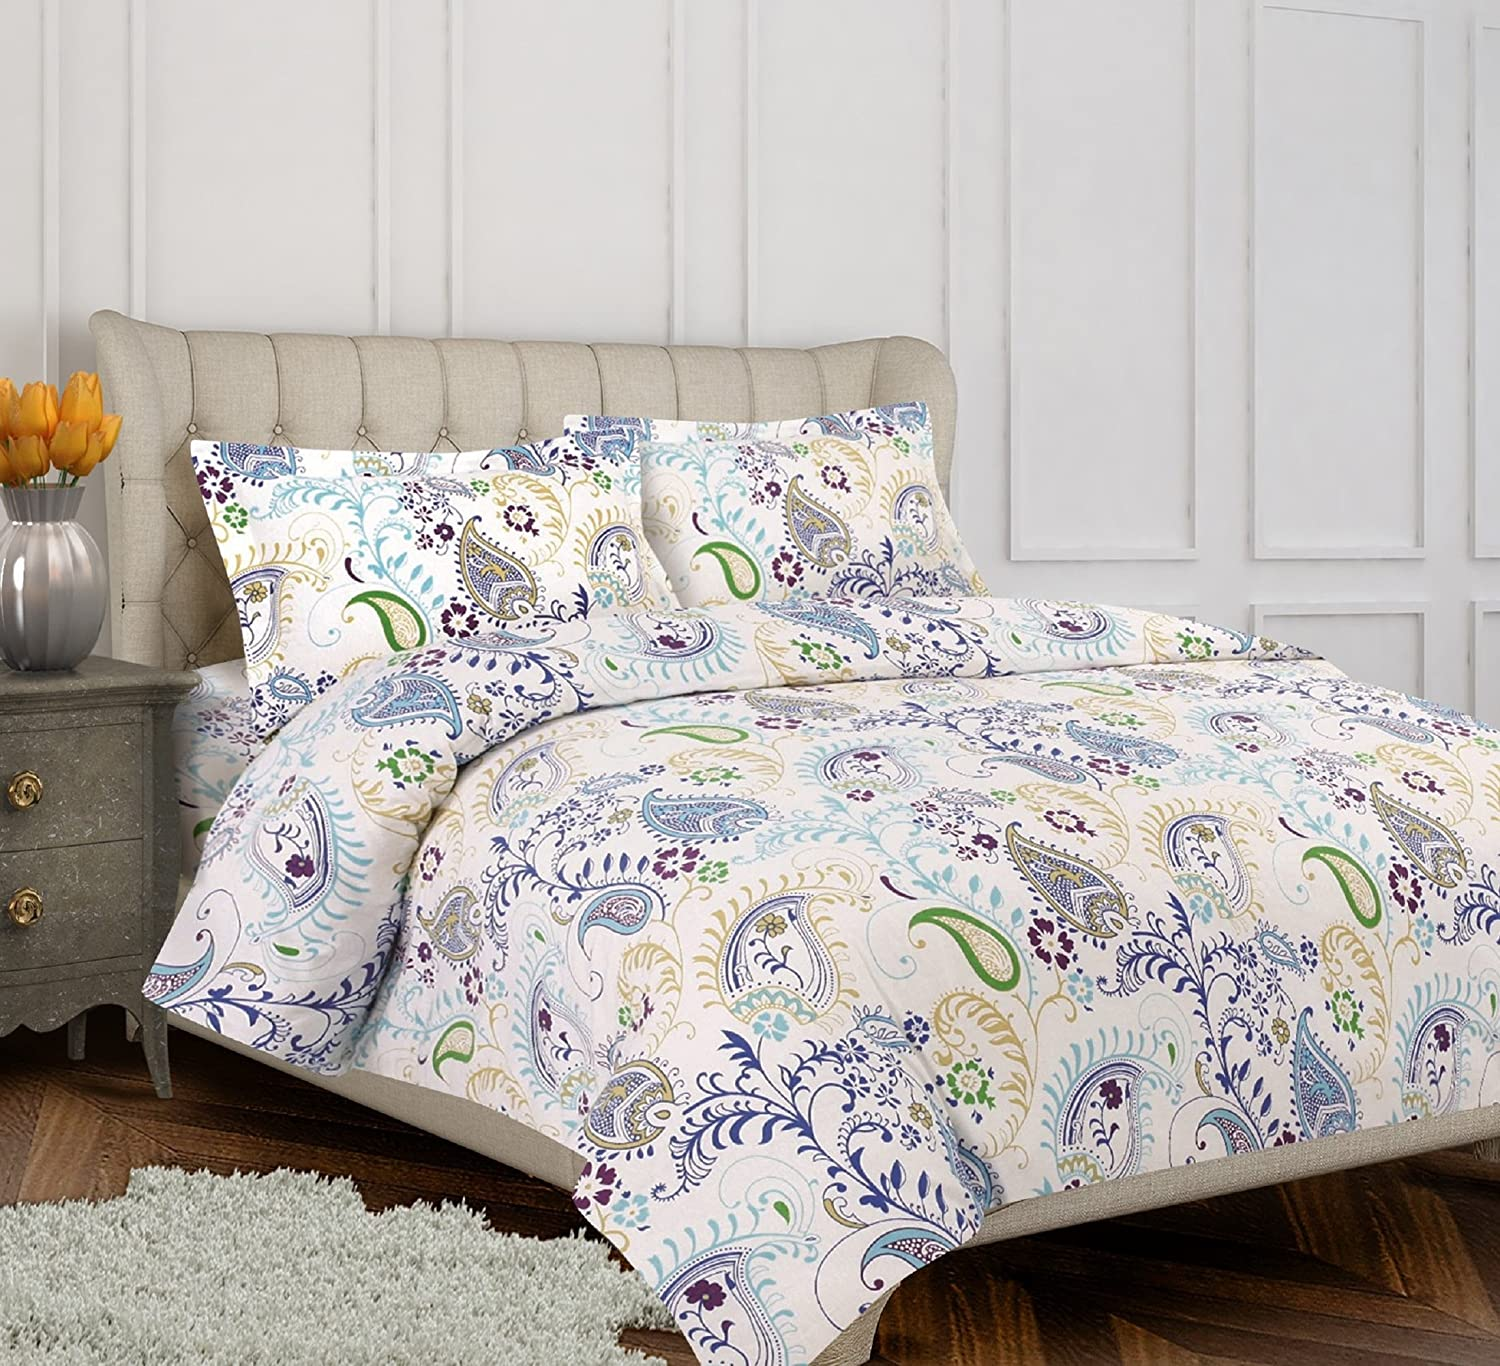 Tribeca Living Flannel Paisley Garden Printed 170 GSM Duvet Cover Set, King California King